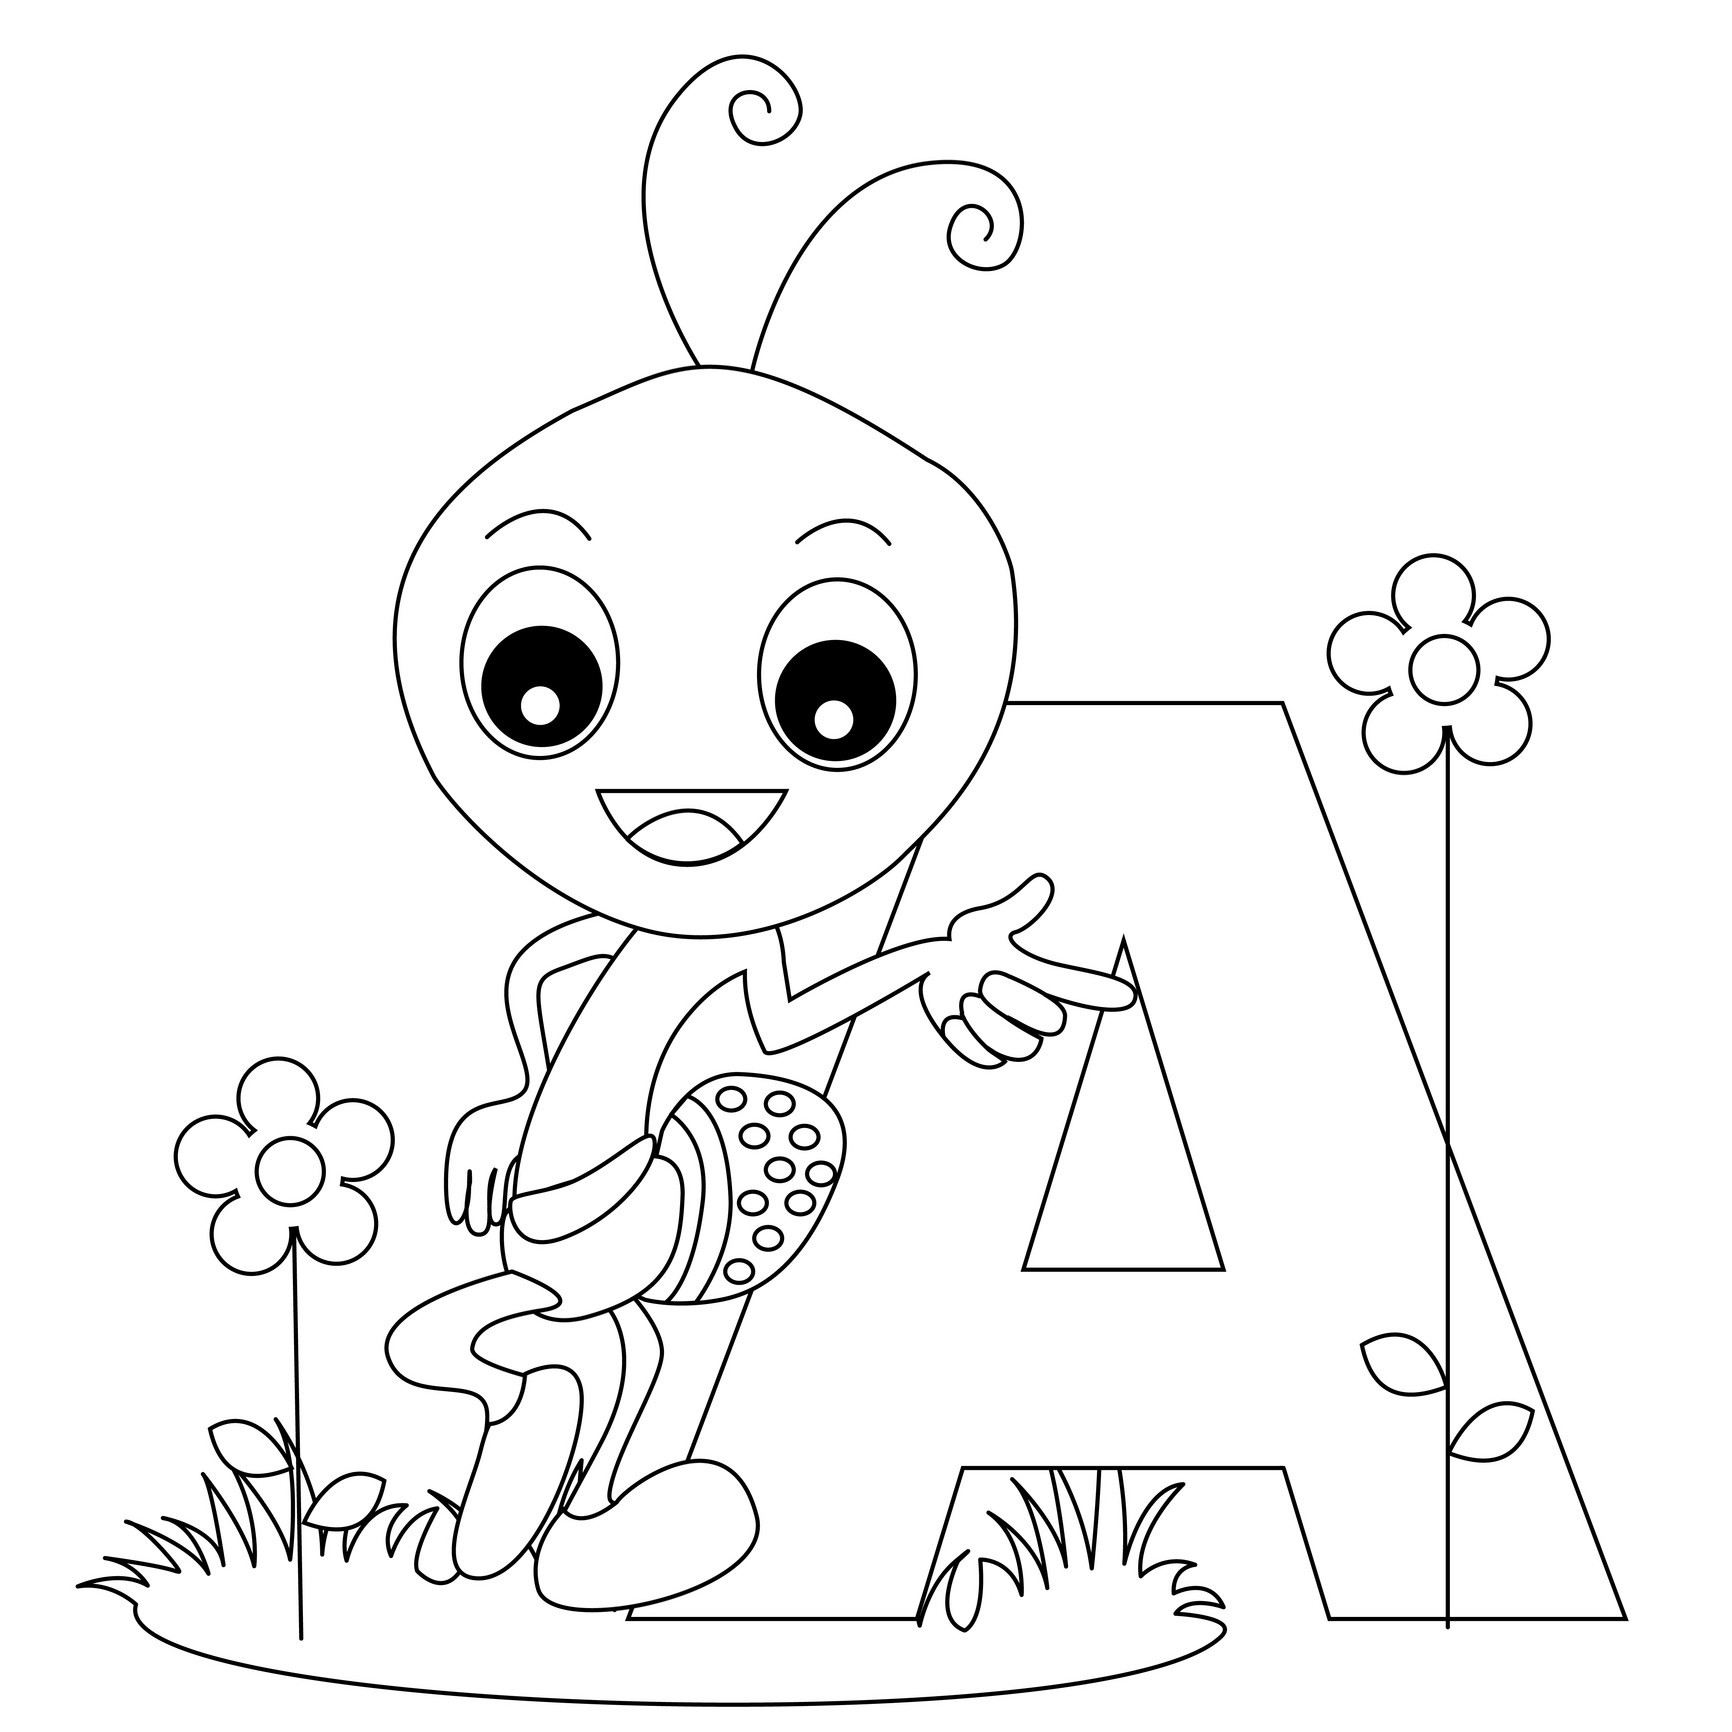 colouring letters a to z letters a is for on pinterest alligators letters a colouring z letters to